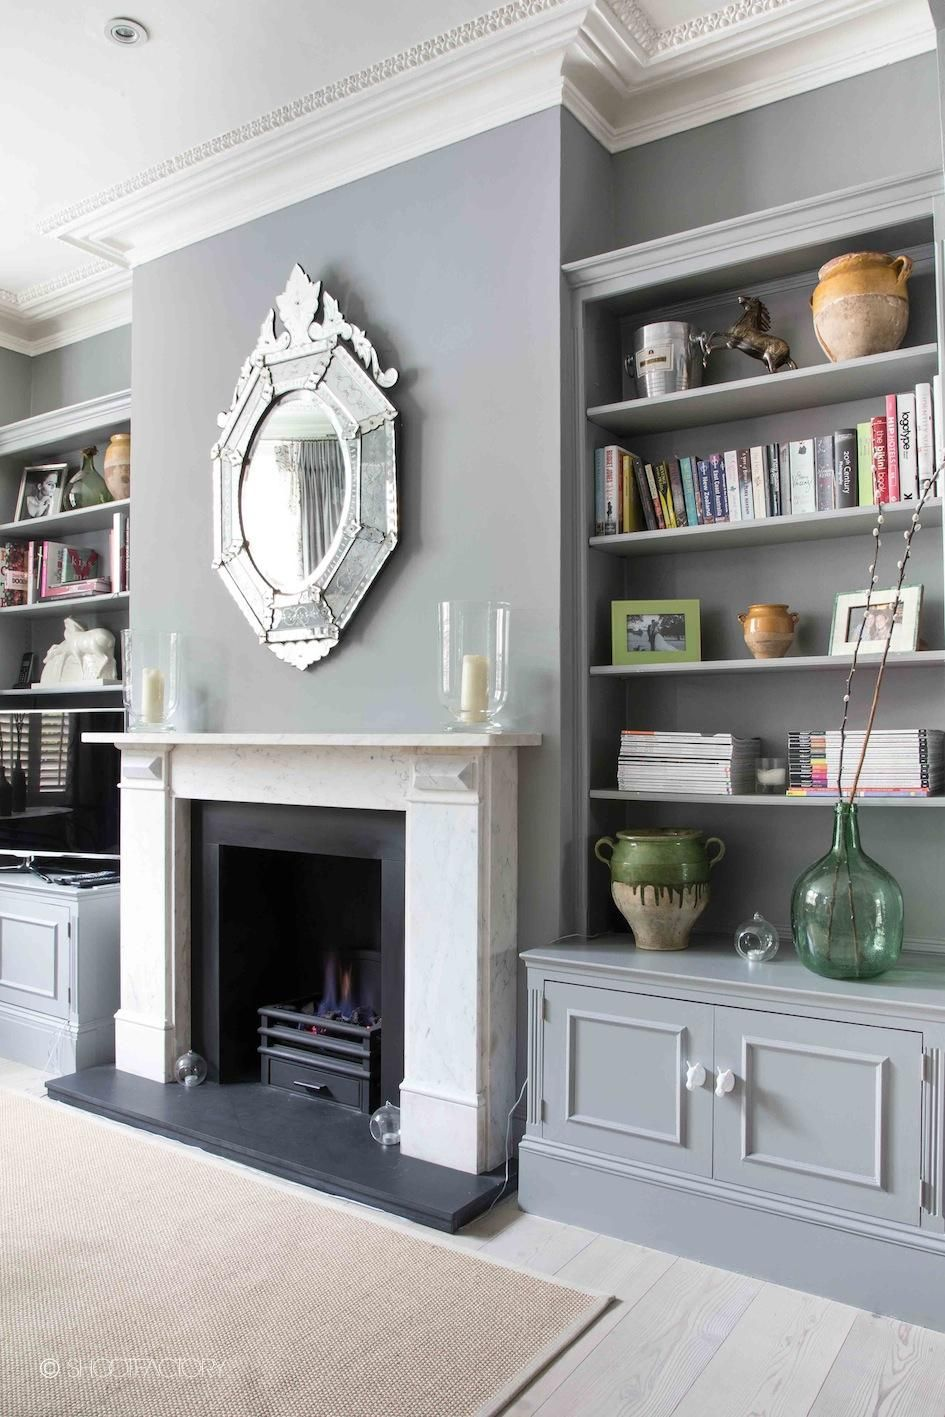 Attirant Grey Lounge With Built In Bookcases And Lovely Fireplace With Feature  Mirror   London Victorian Terrace   Photoshoot Location Via SHOOTFACTORY.